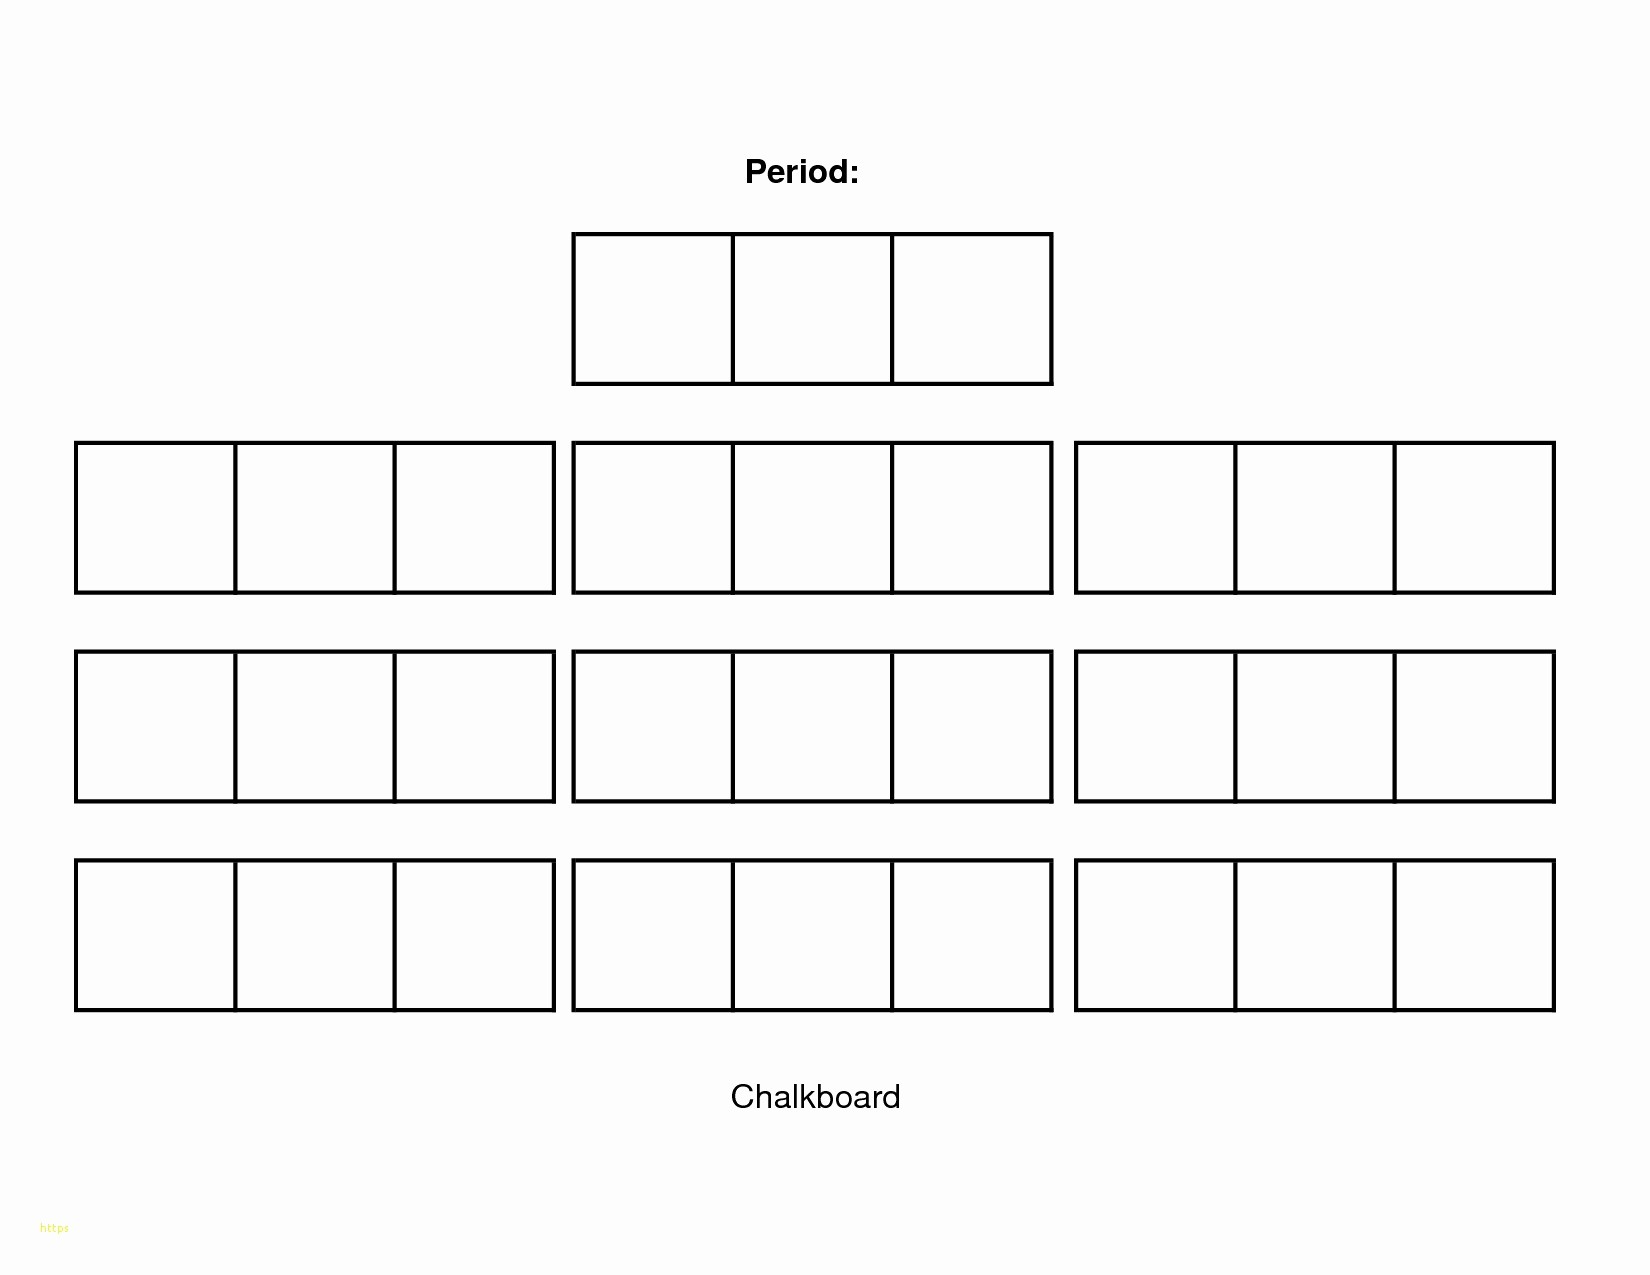 Seating Charts Templates for Classrooms Elegant Classroom Seating Chart Template Excel